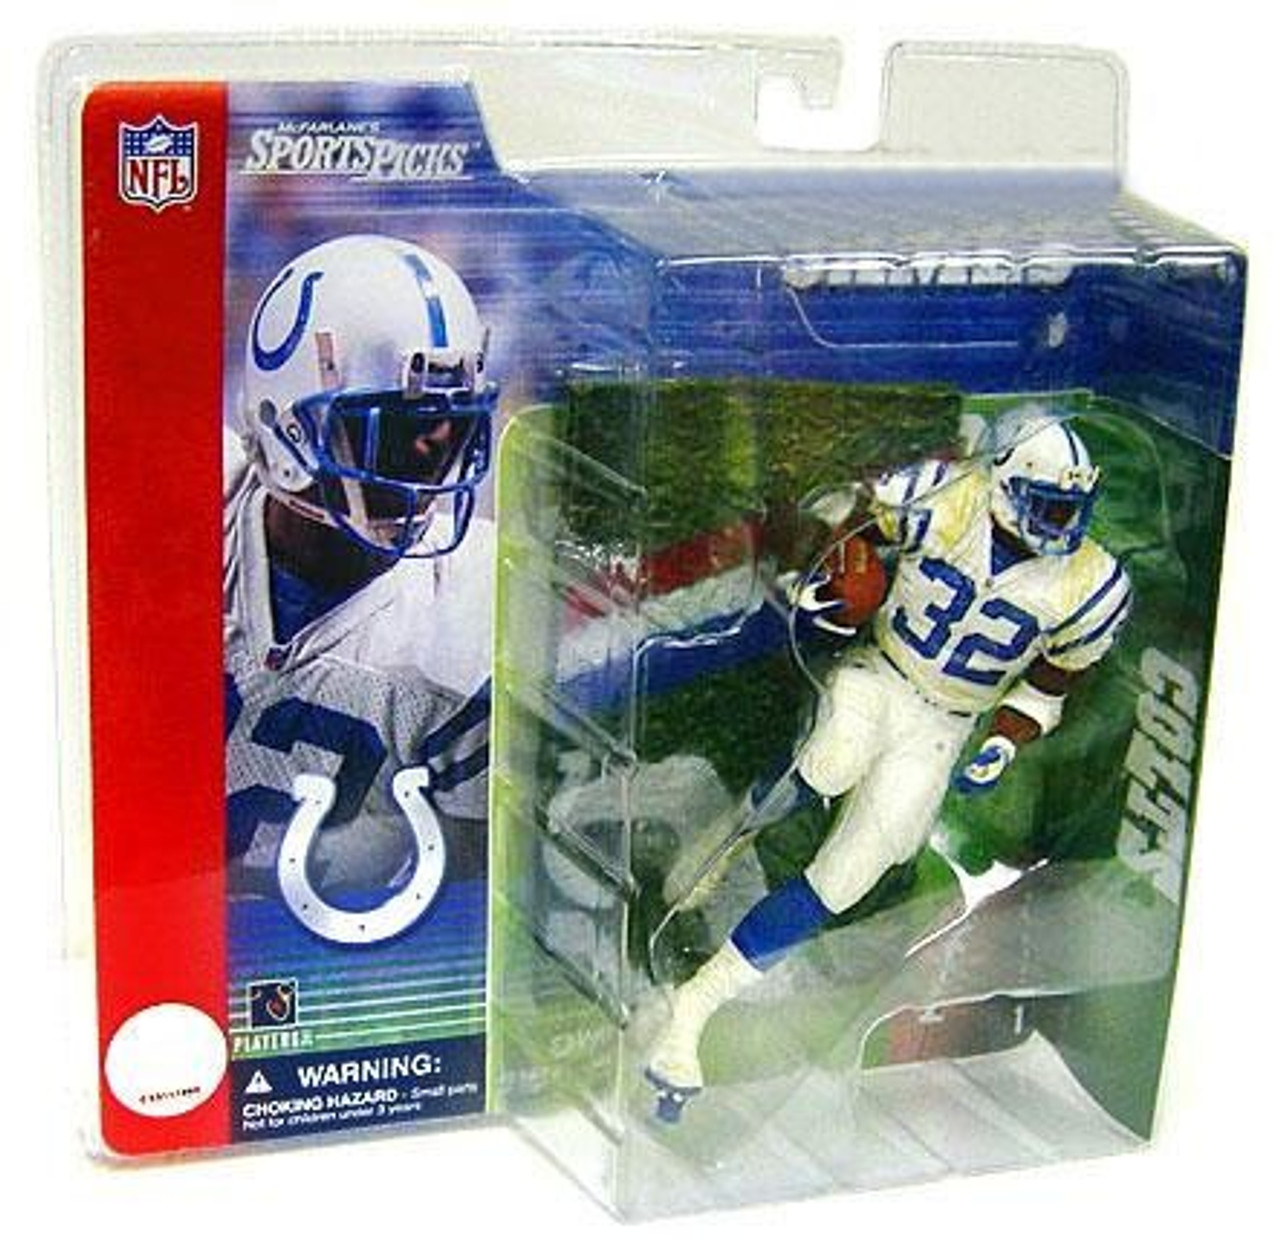 premium selection 07652 0eb97 McFarlane Toys NFL Indianapolis Colts Sports Picks Series 1 Edgerrin James  Action Figure [White Jersey, Damaged Package]